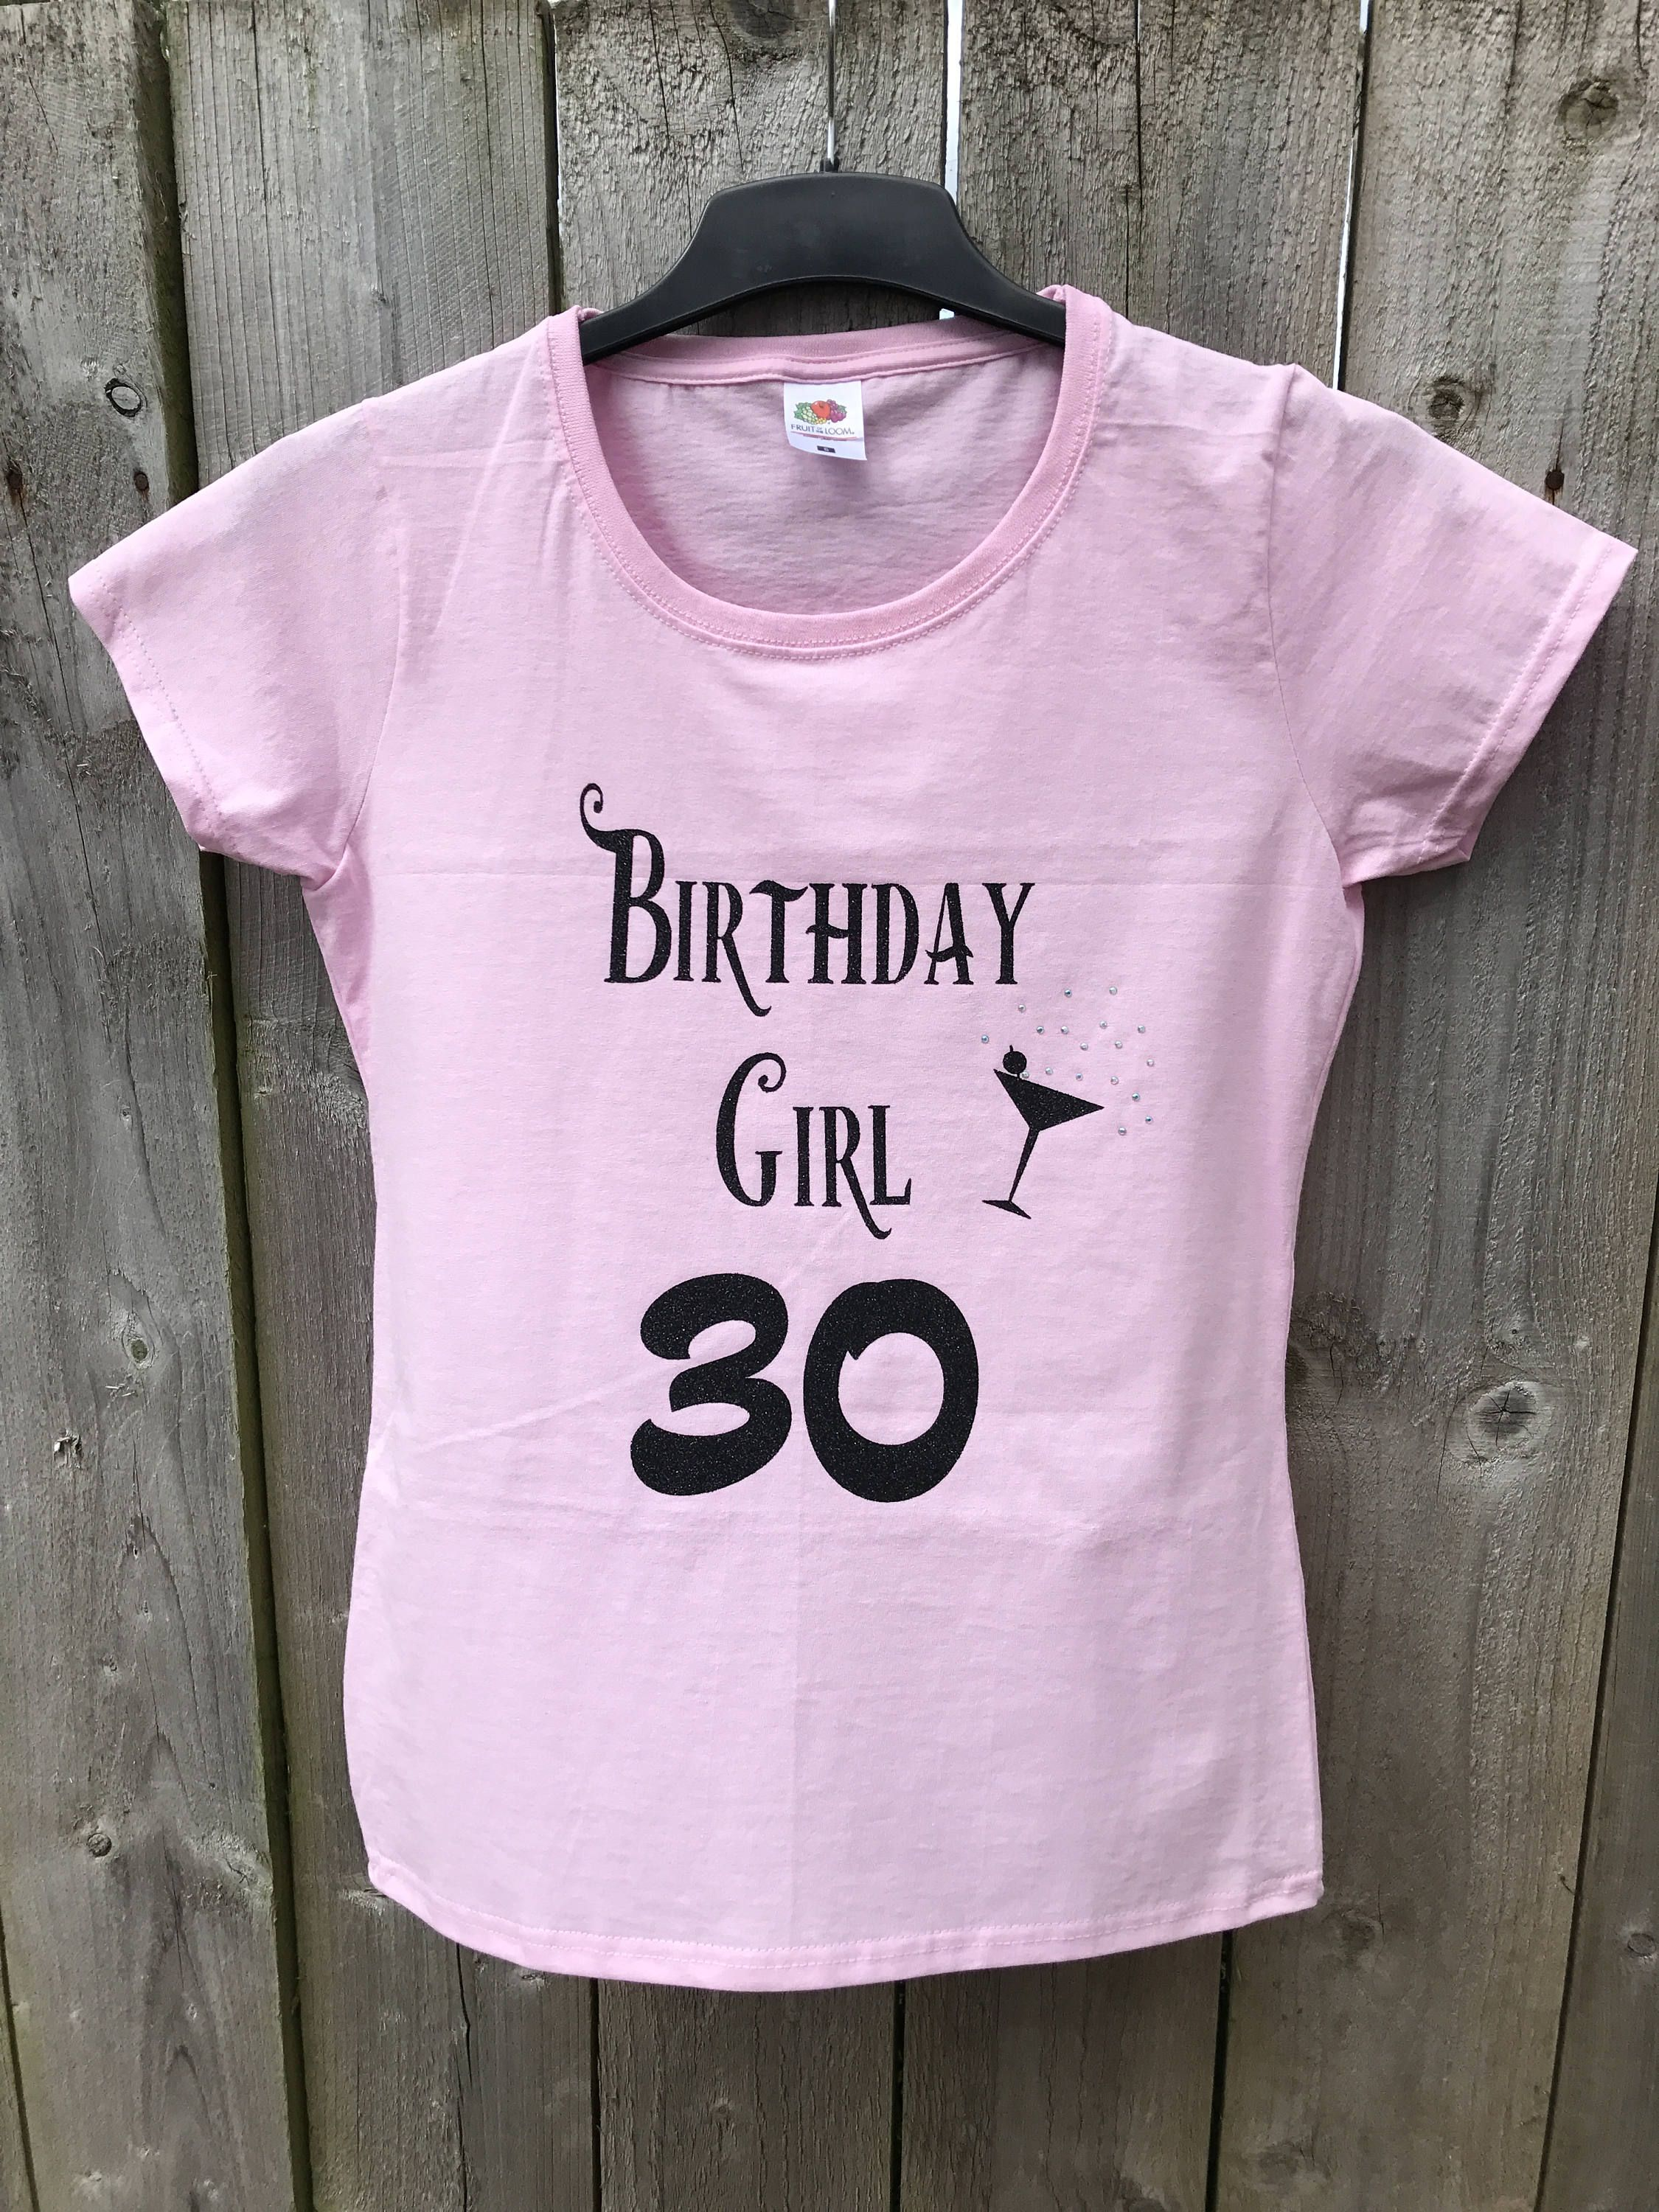 Personalised Birthday T Shirt Girls On Tour Hen Party Entourage Tops 18th 25th 30th 40th 50th 60th Birtday Gift By